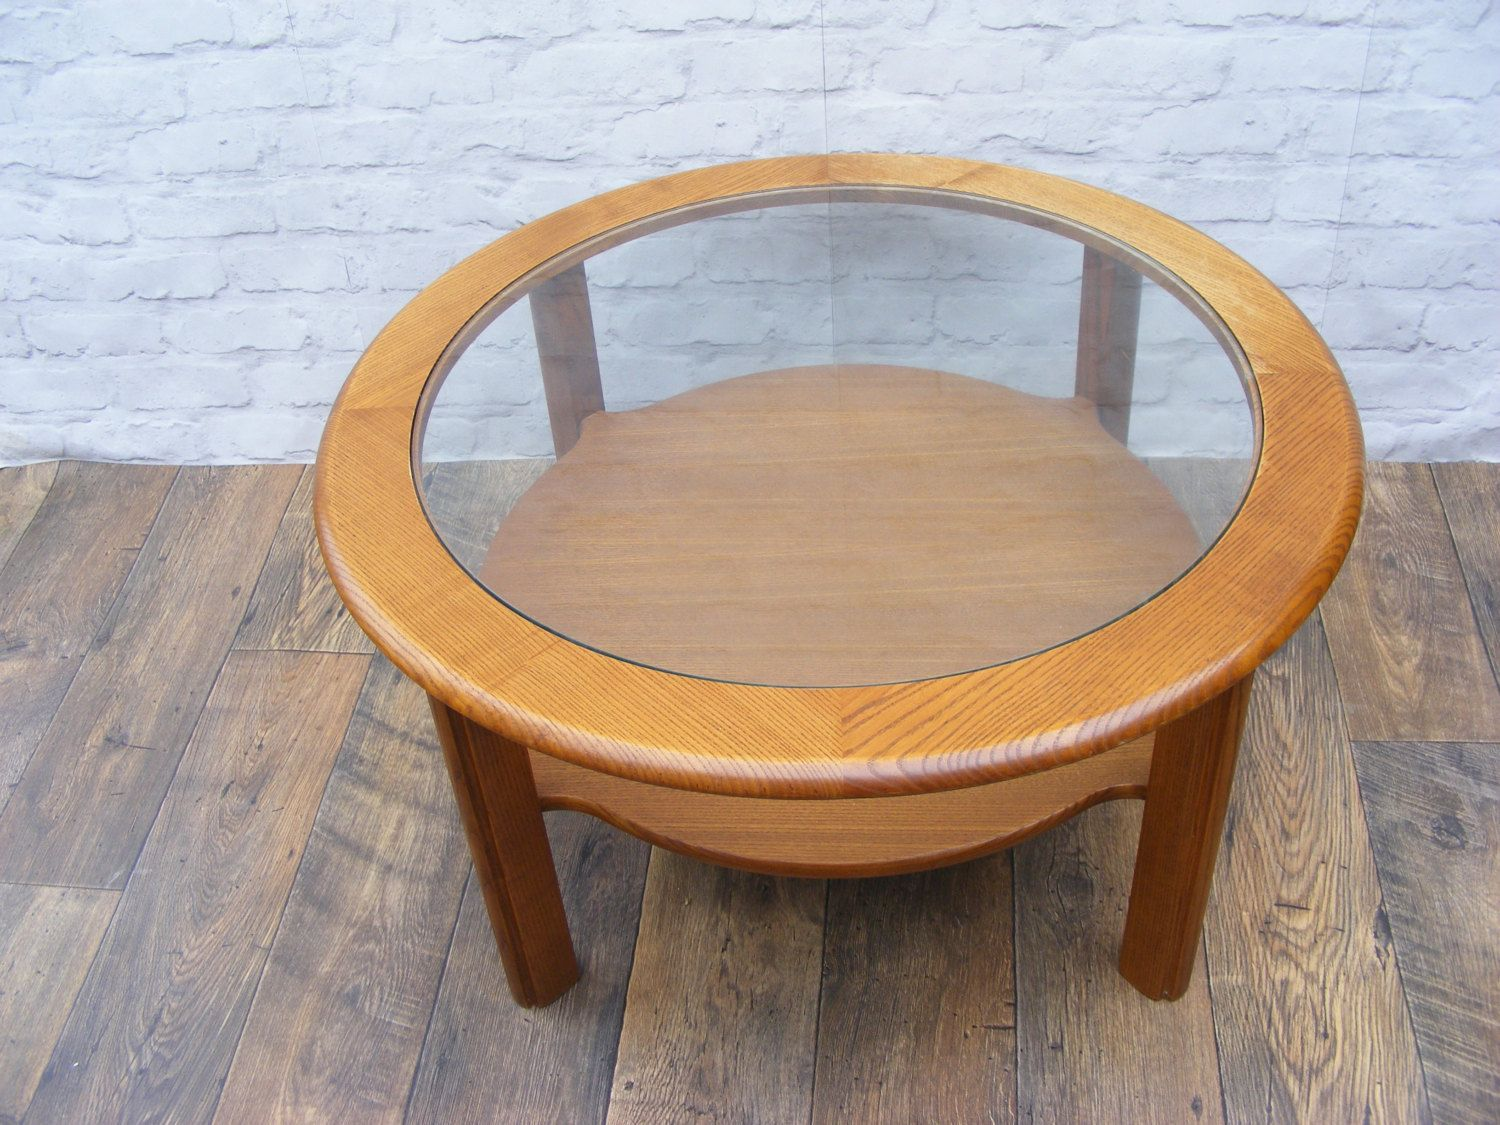 A Genuine G Plan Large Round Teak Coffee Table With Glass Inset And Shelf Beneath This Mid Century Coffee Table Mid 20th Century Furniture Teak Coffee Table [ 1125 x 1500 Pixel ]